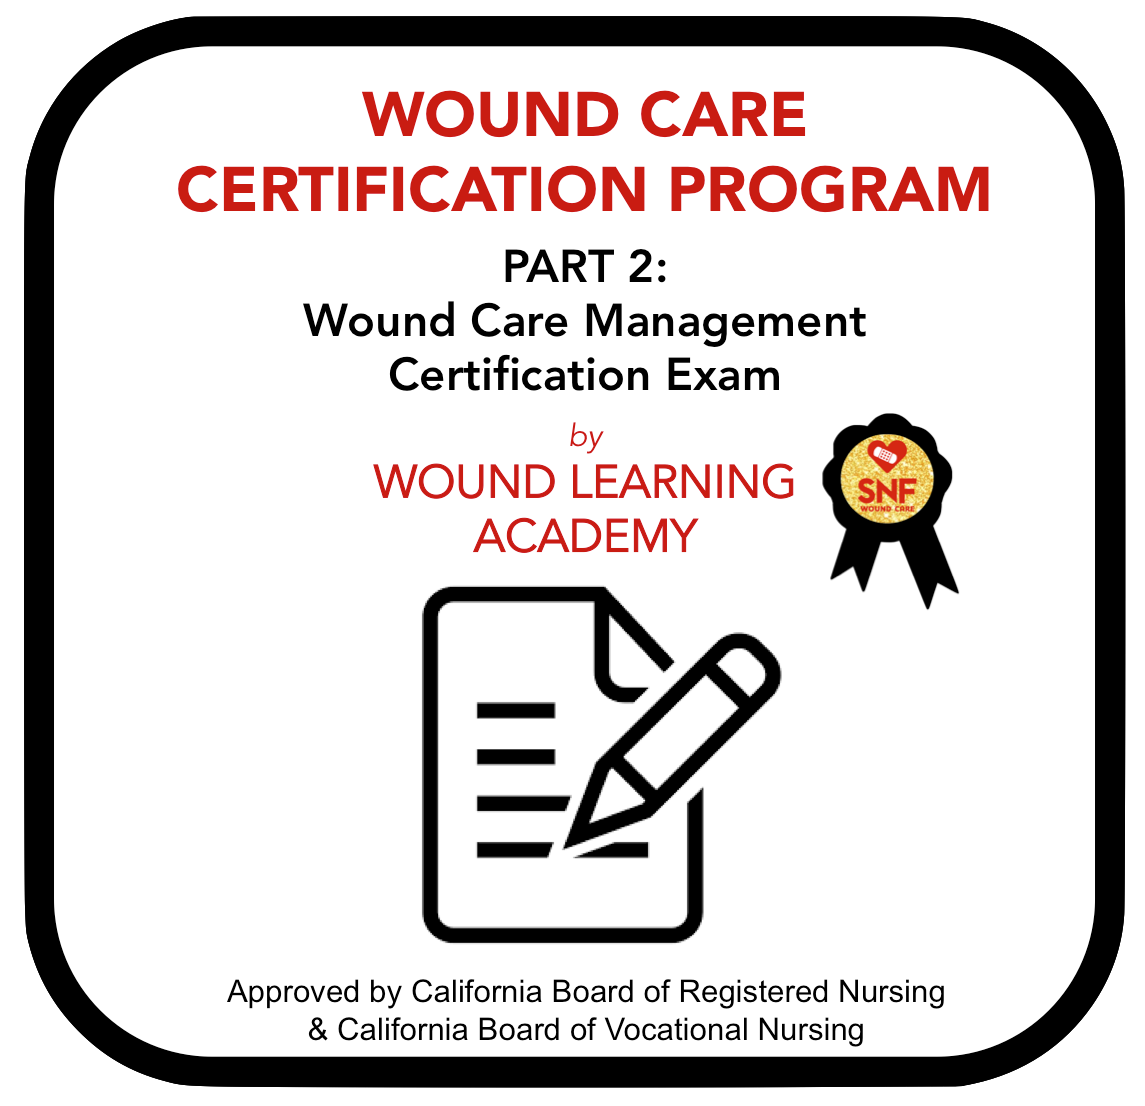 GET WOUND CARE CERTIFIED